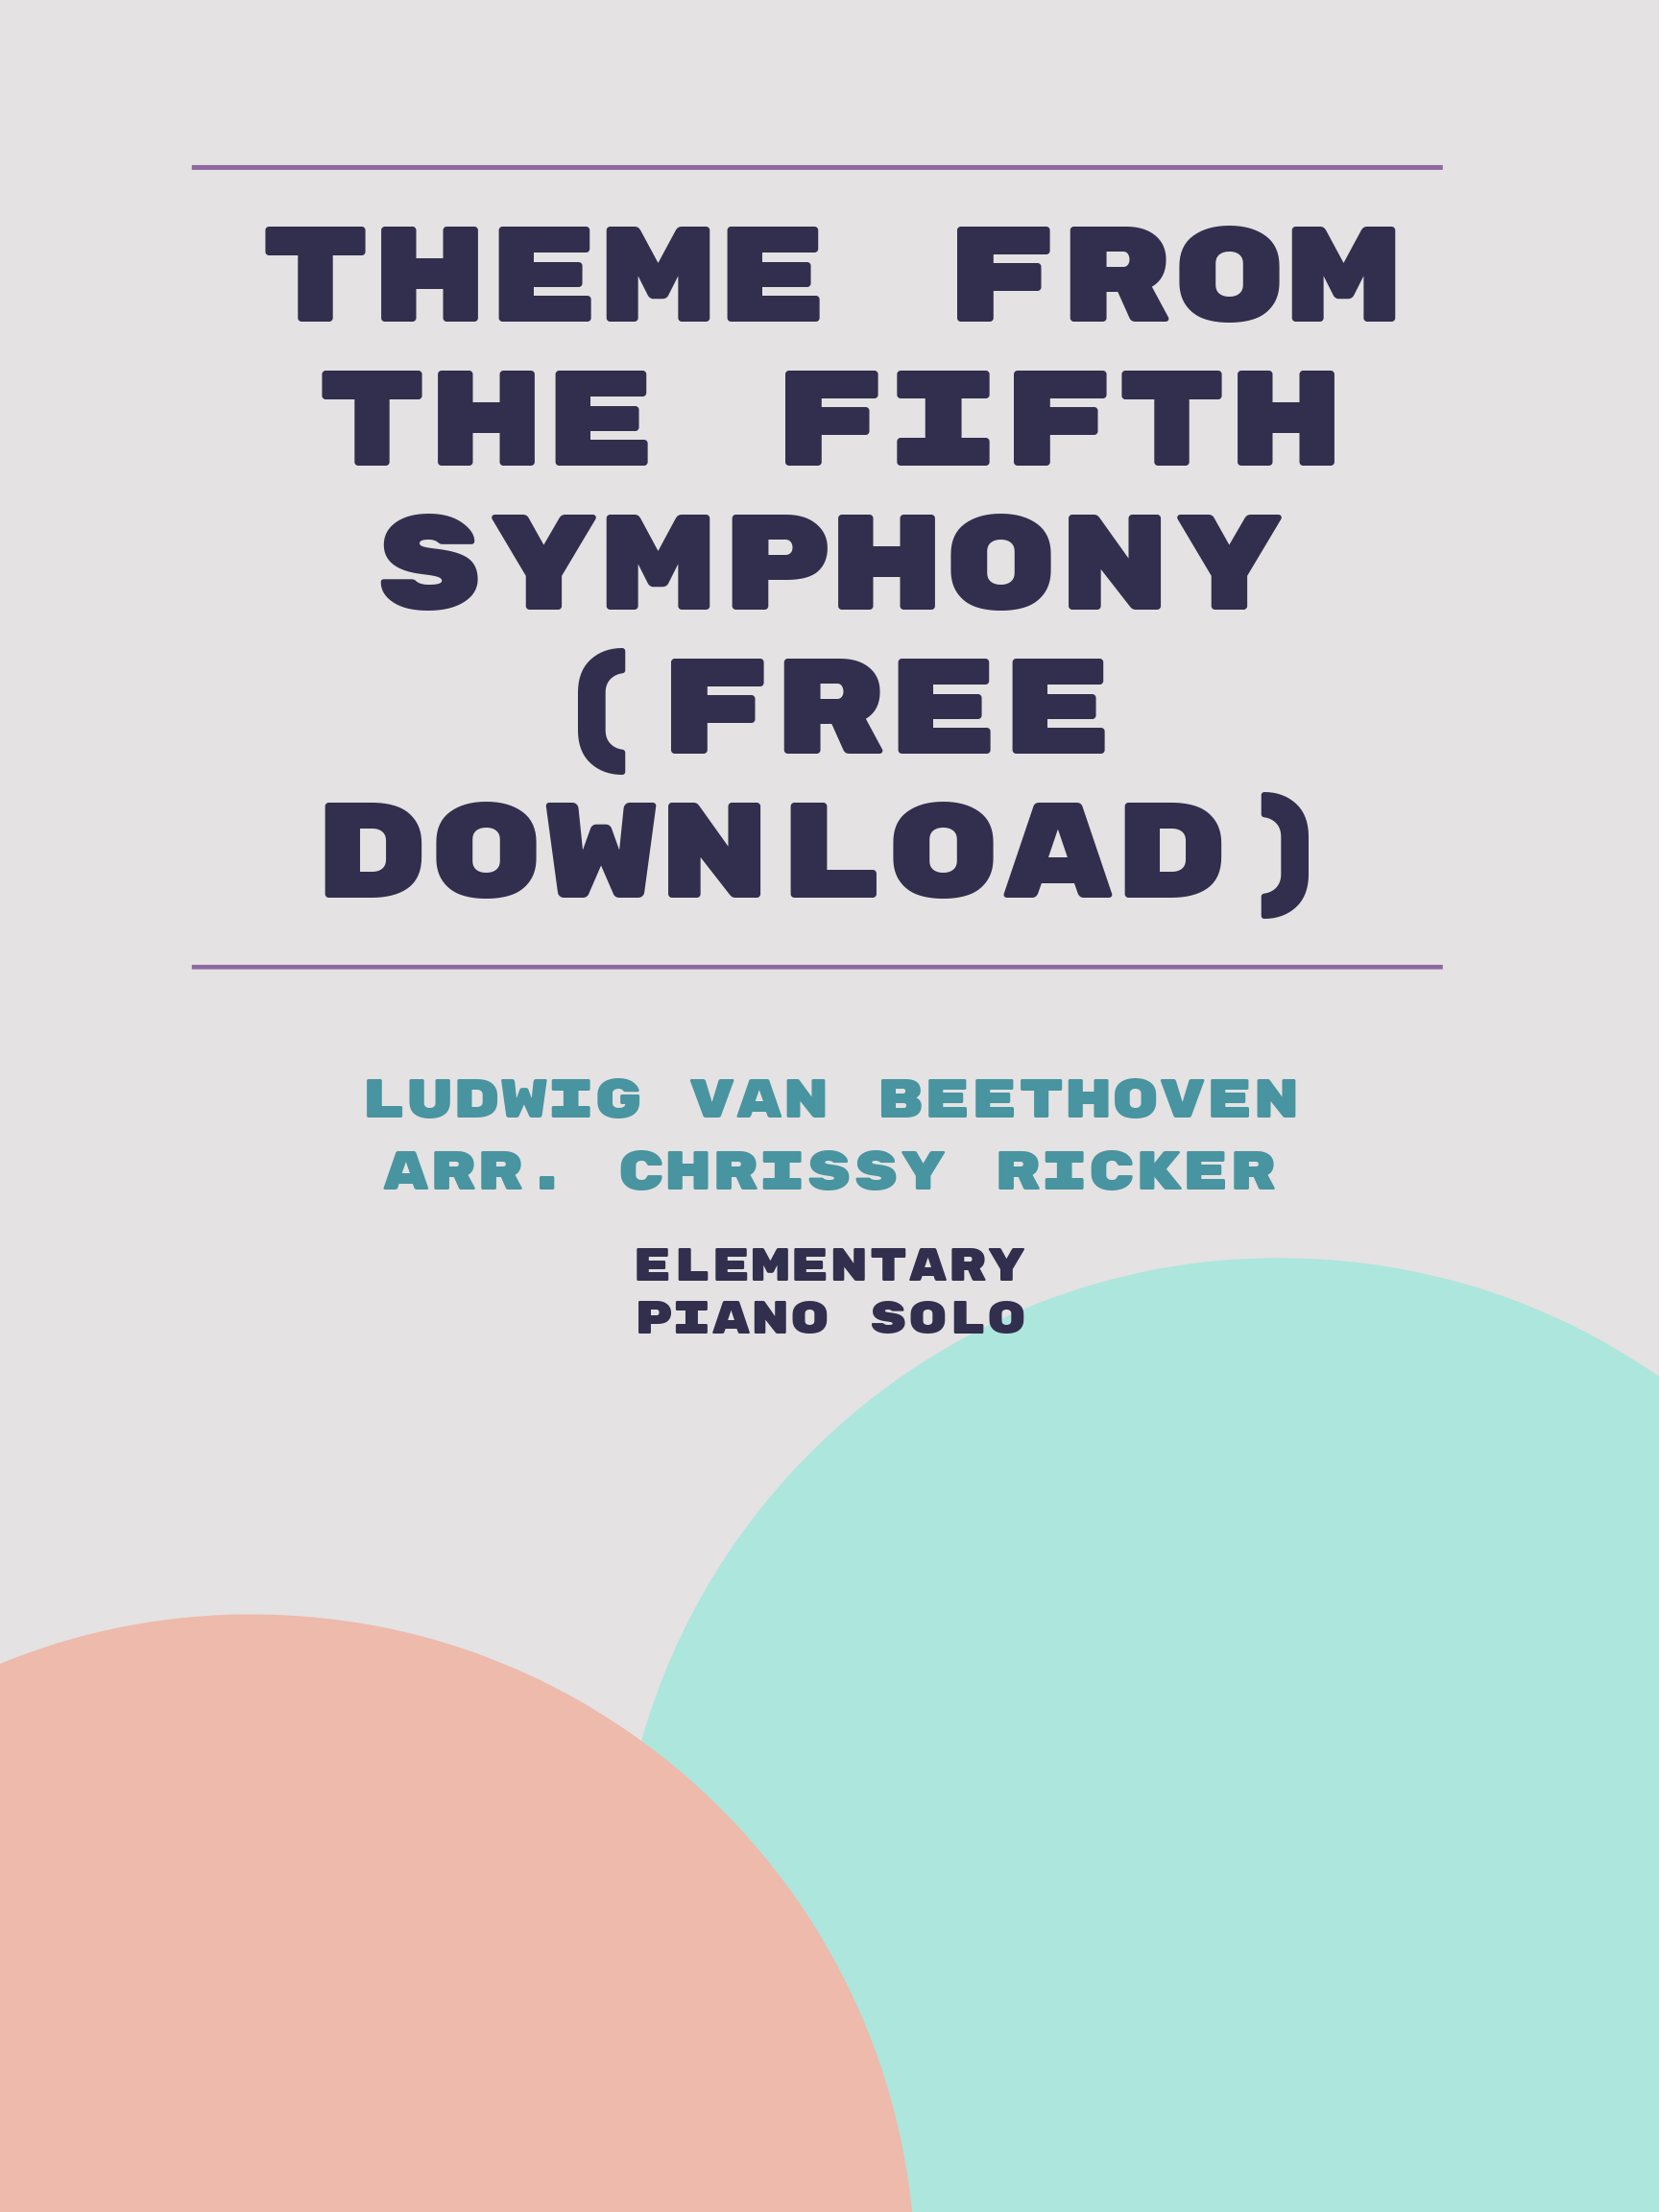 Theme from the Fifth Symphony (free download) by Ludwig van Beethoven